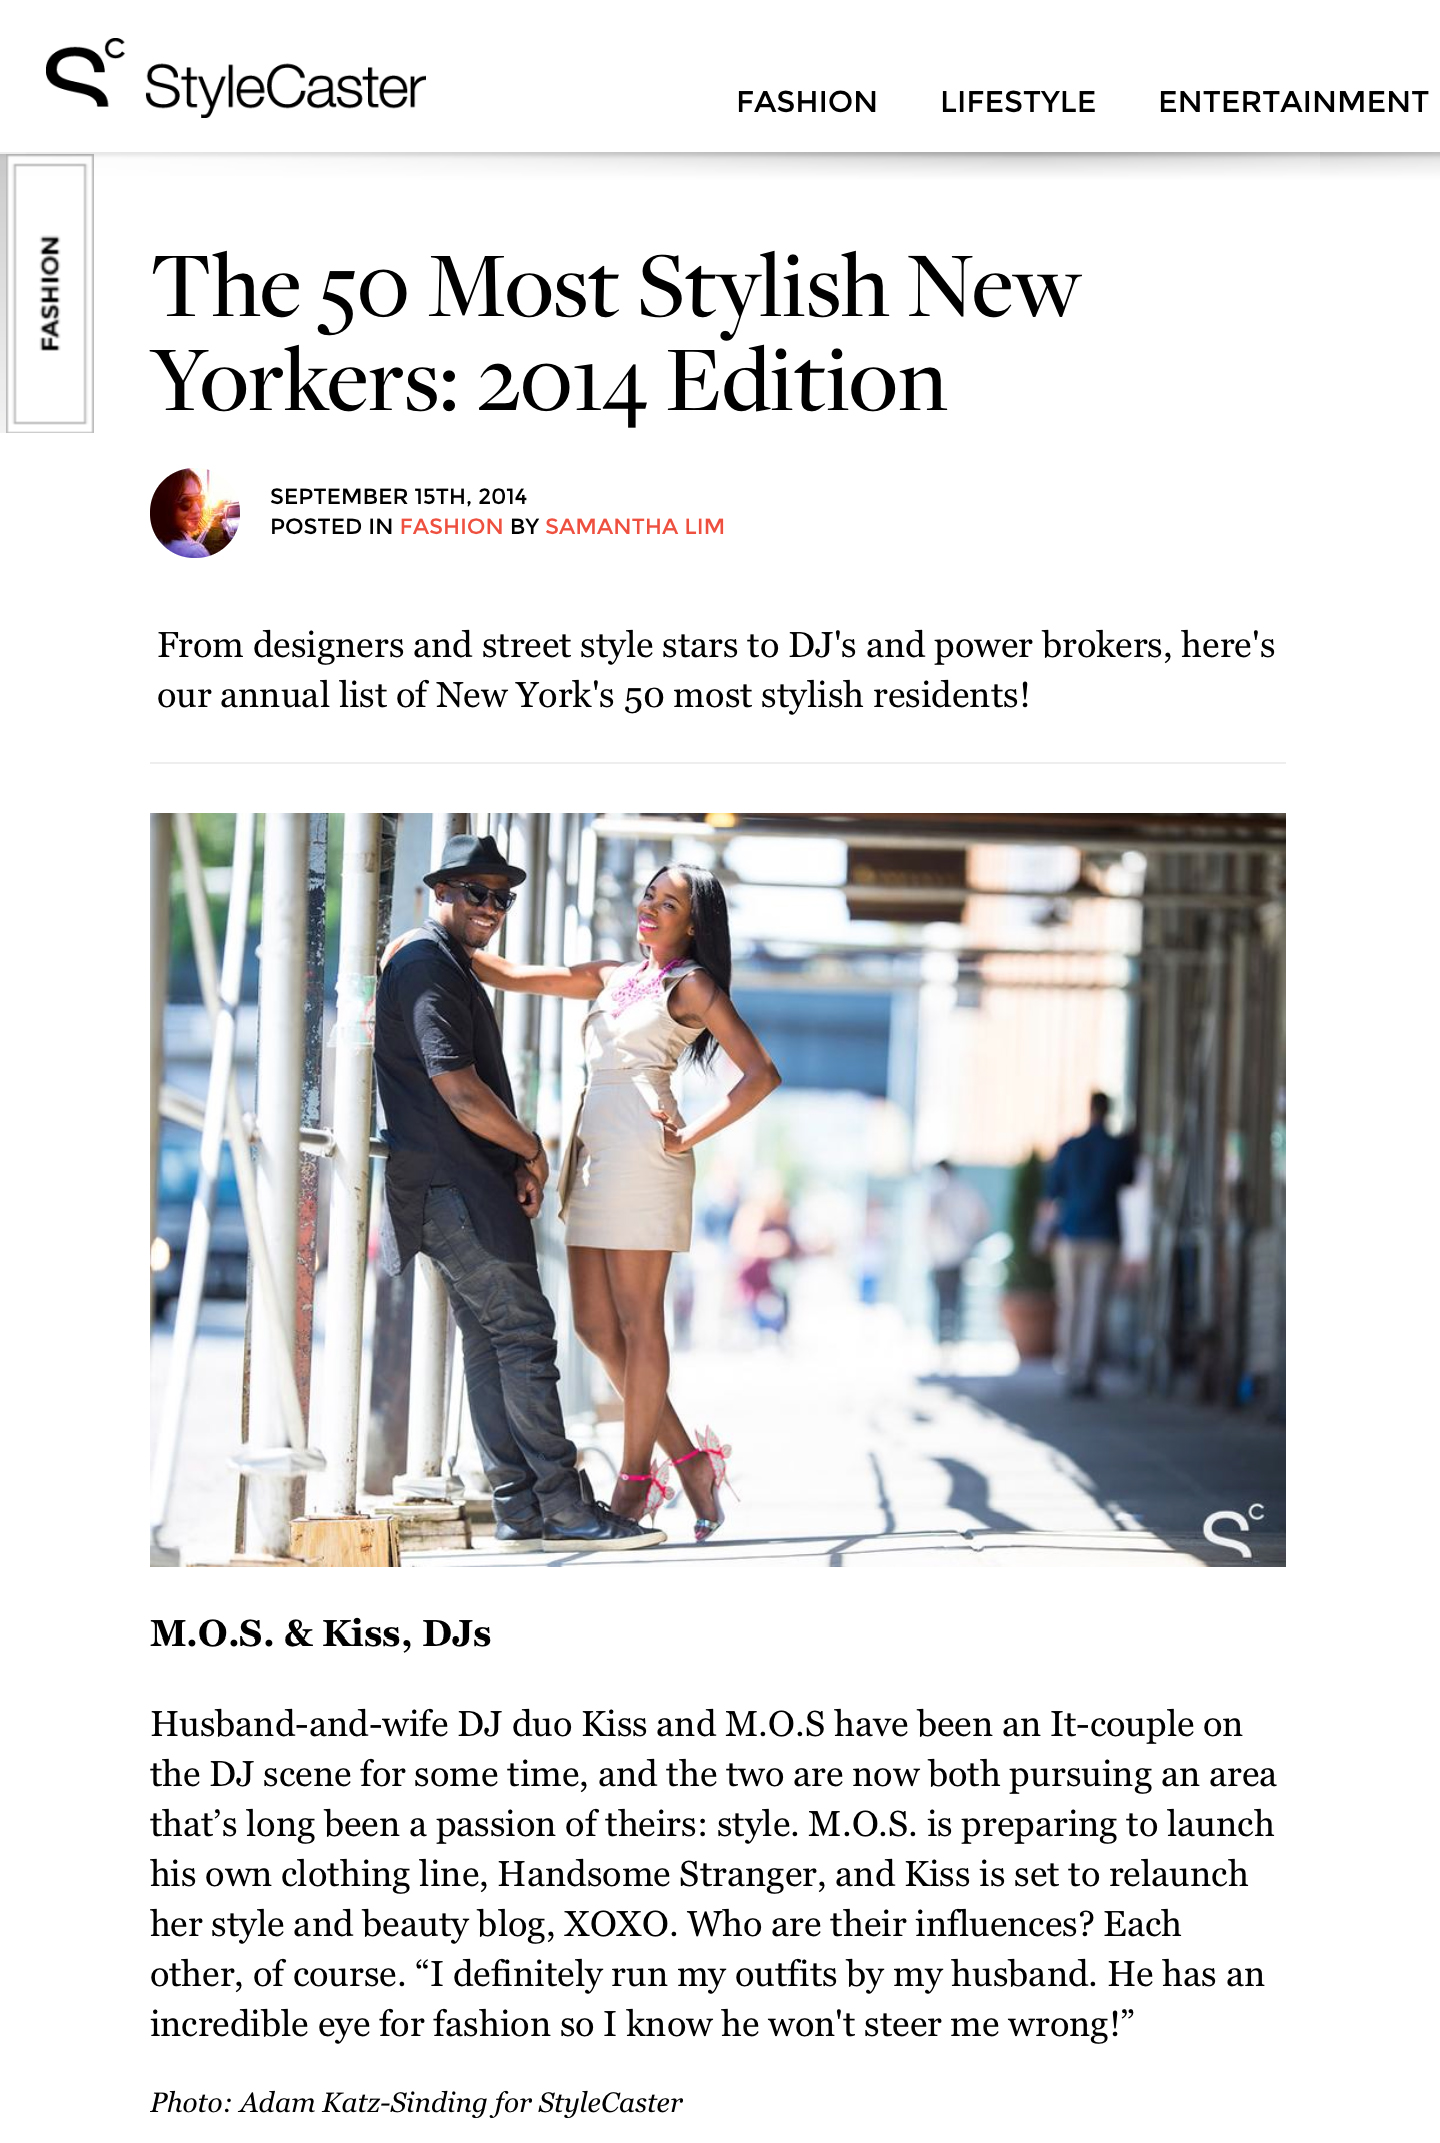 Stylecaster - 50 Most Stylish NYers